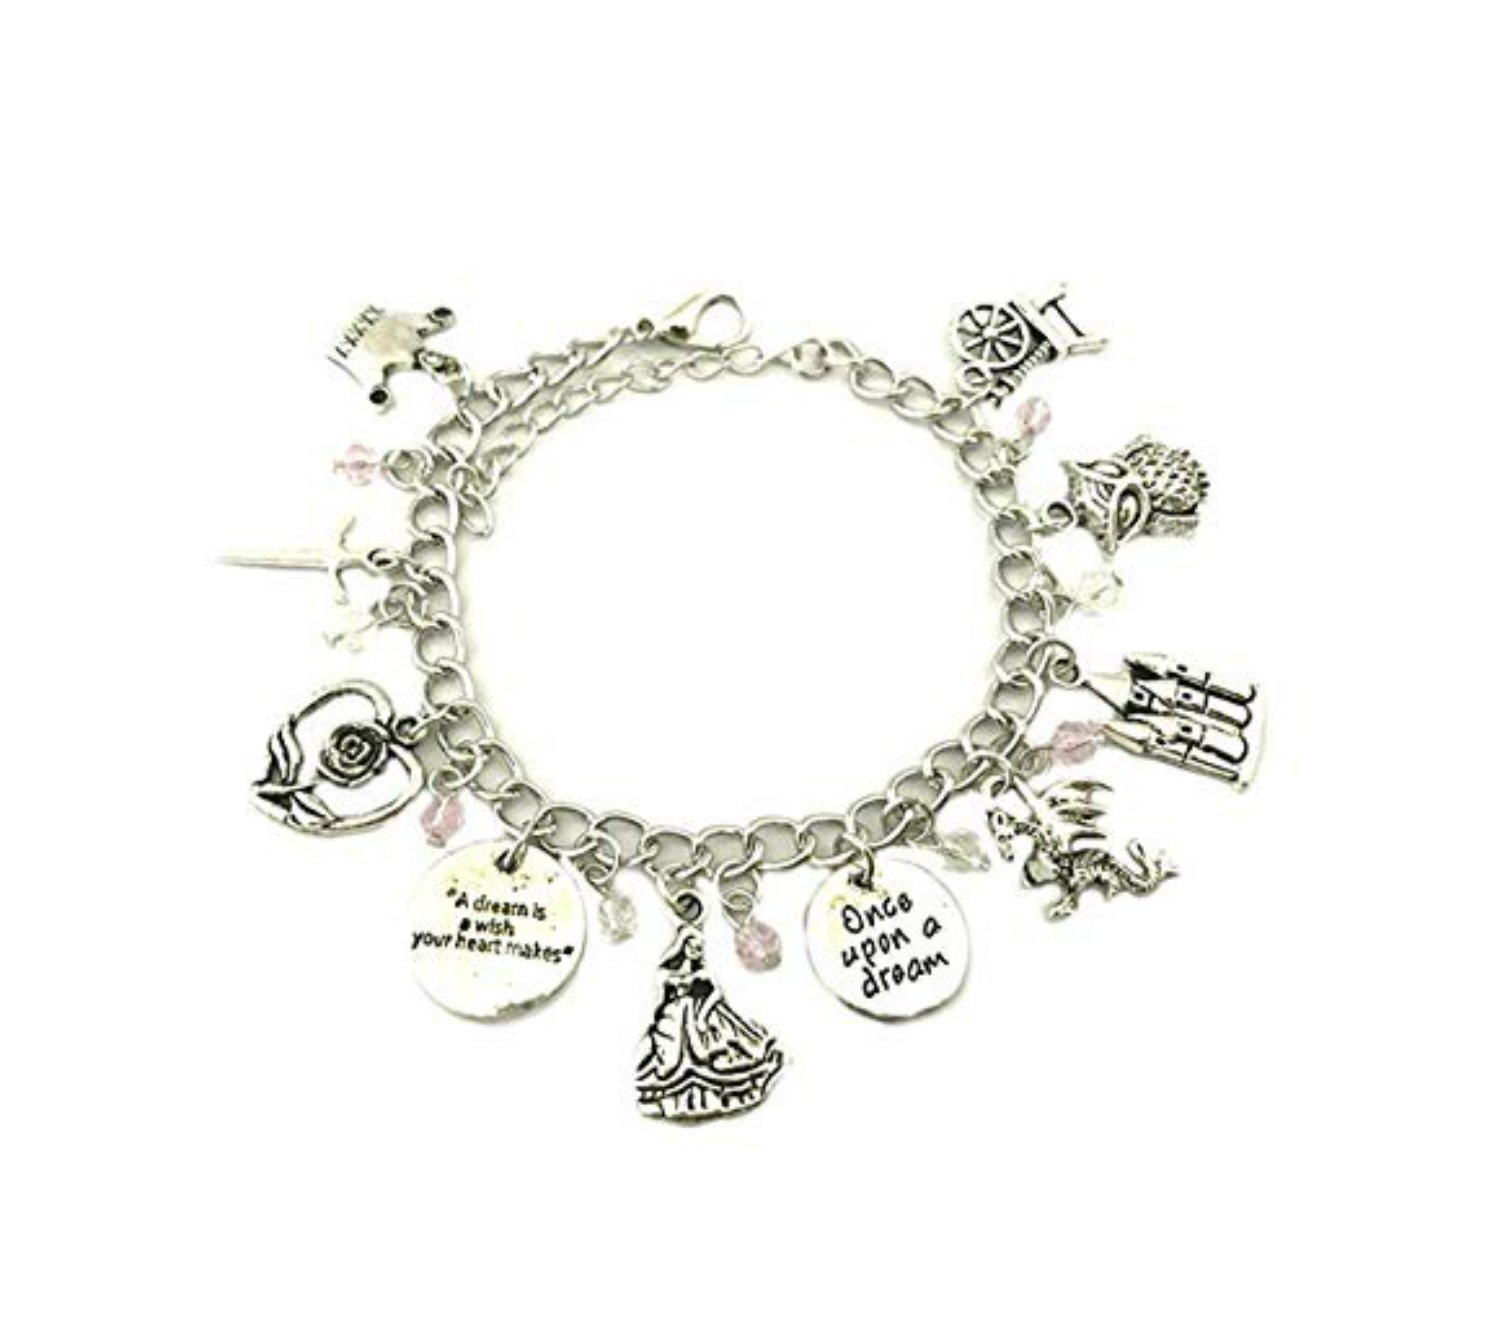 Outlander Brand Disney Sleeping Beauty Premium Quality Multi Charm Lobster Clasp Bracelet w/Gift Box